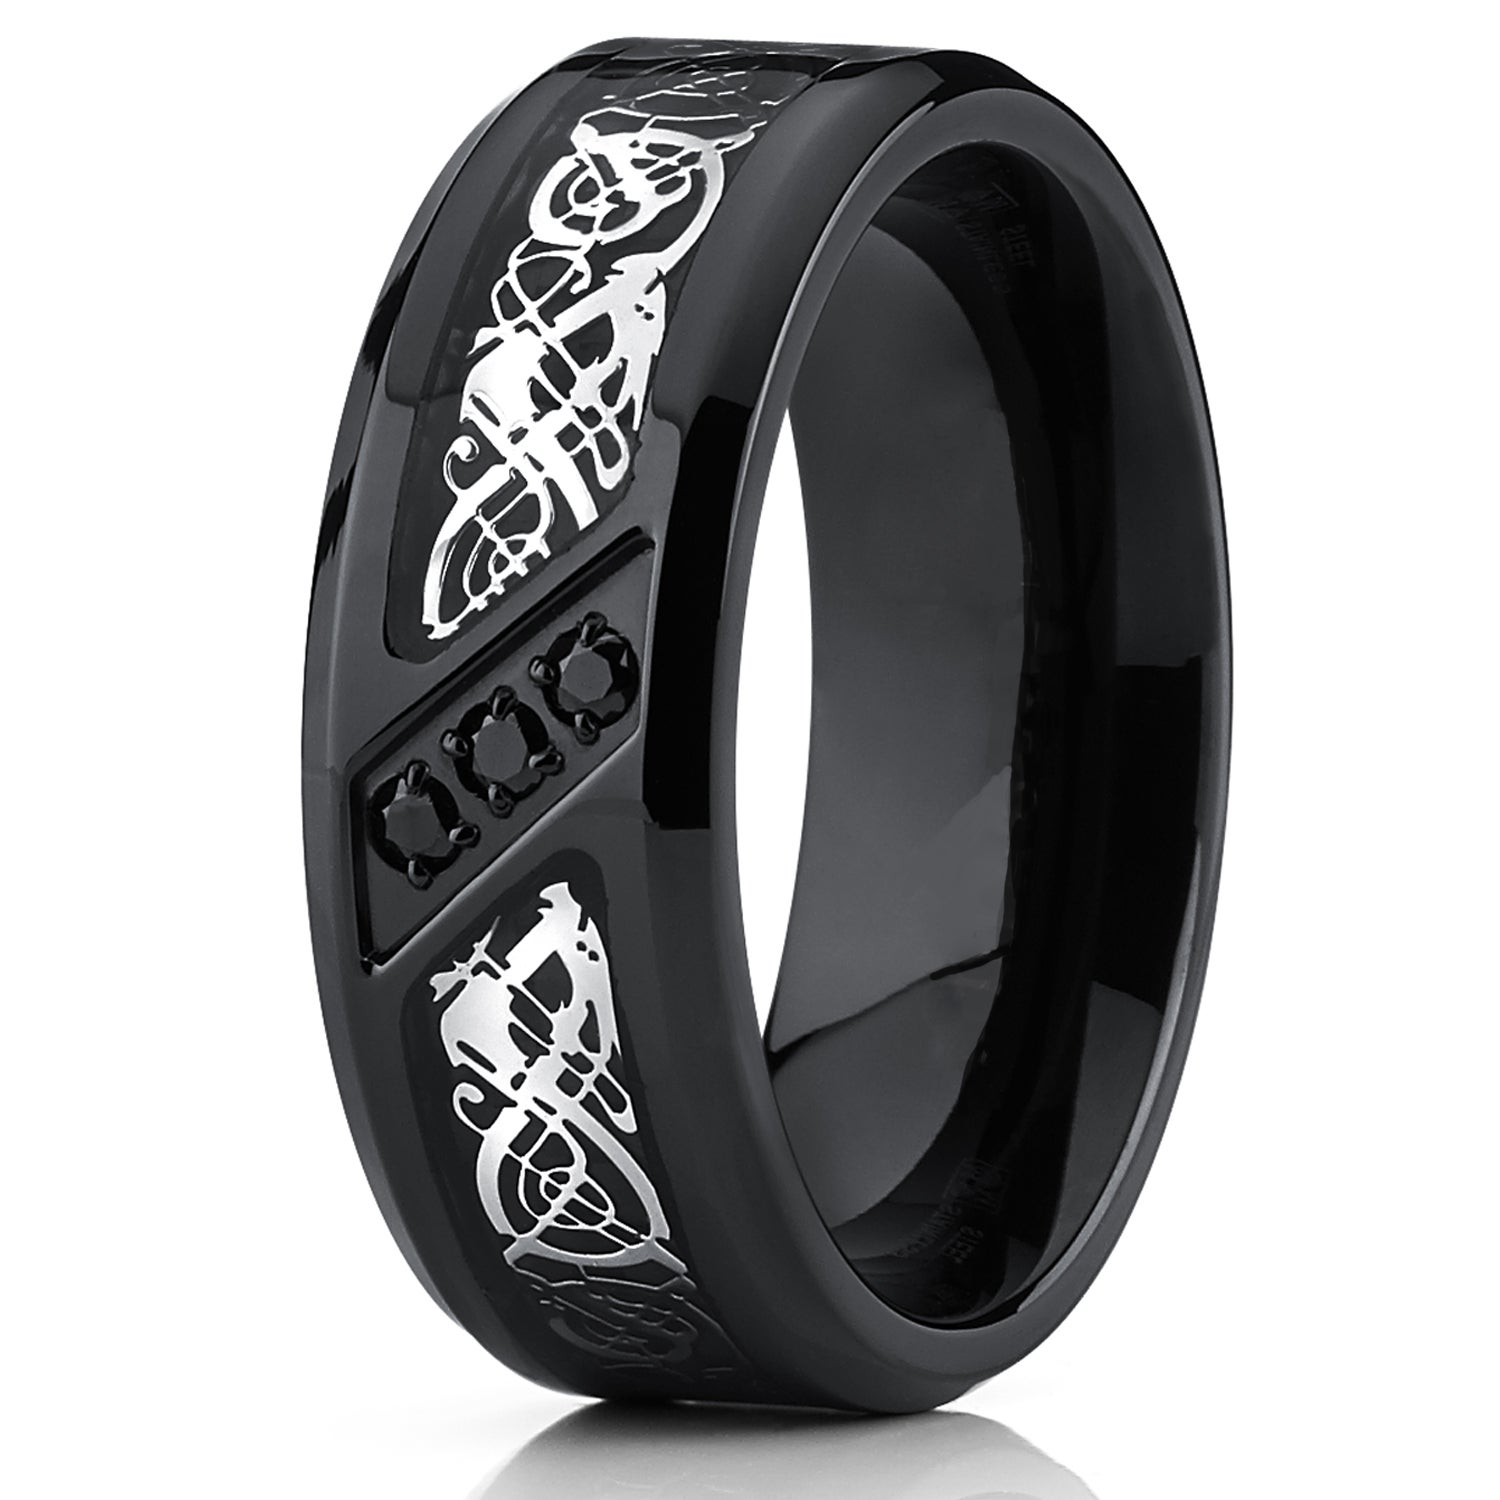 wedding us black solitaire tungsten amazon half jewelry dp unisex ring carbon fiber rings whole com sizes blue inlay